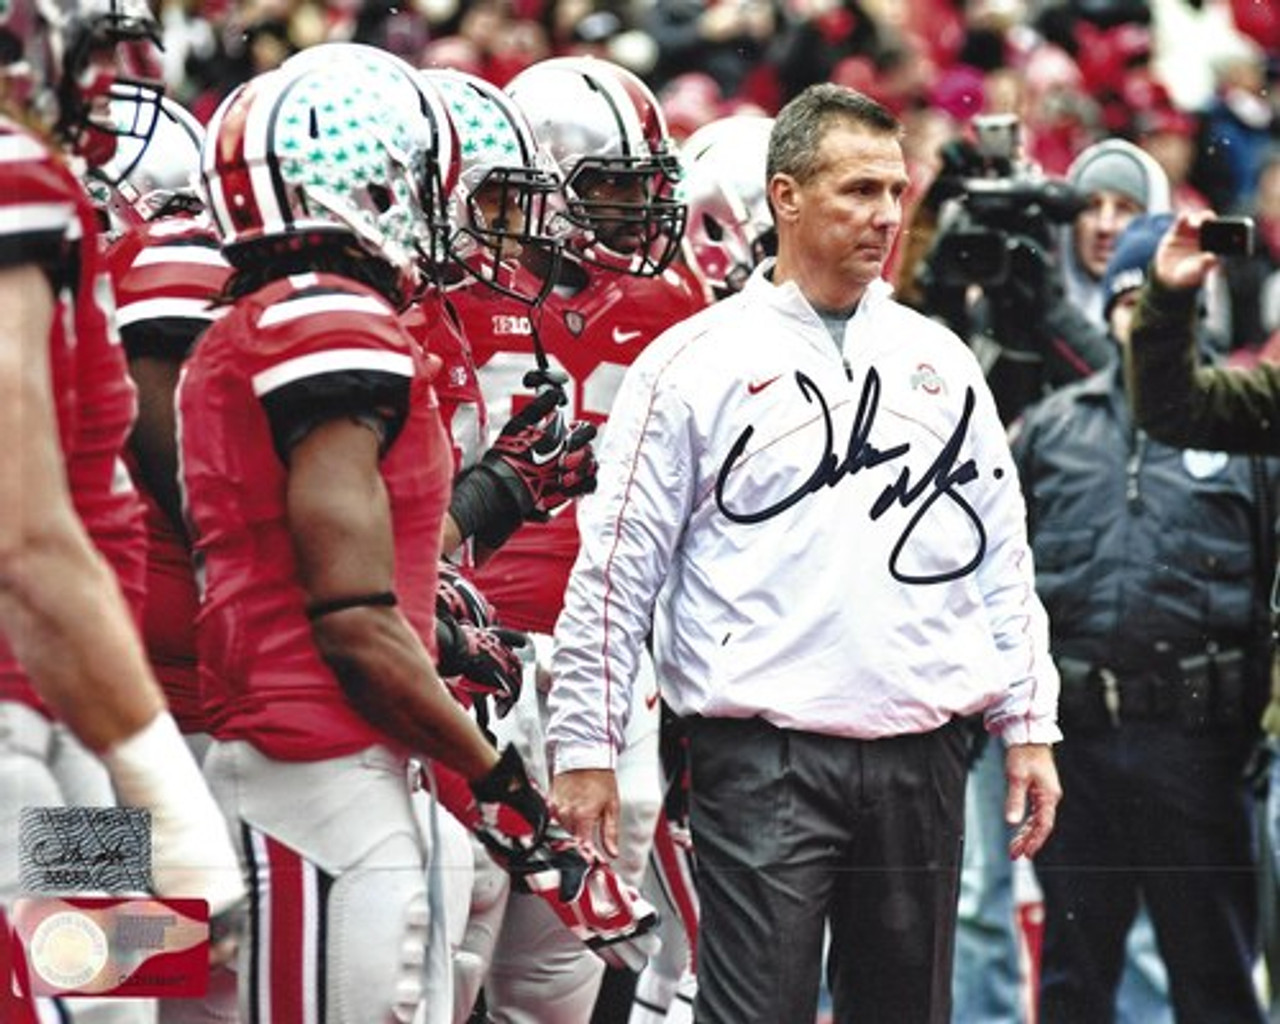 Urban Meyer Ohio State Buckeyes 16-2 16x20 Autographed Photo - PSA Authentic